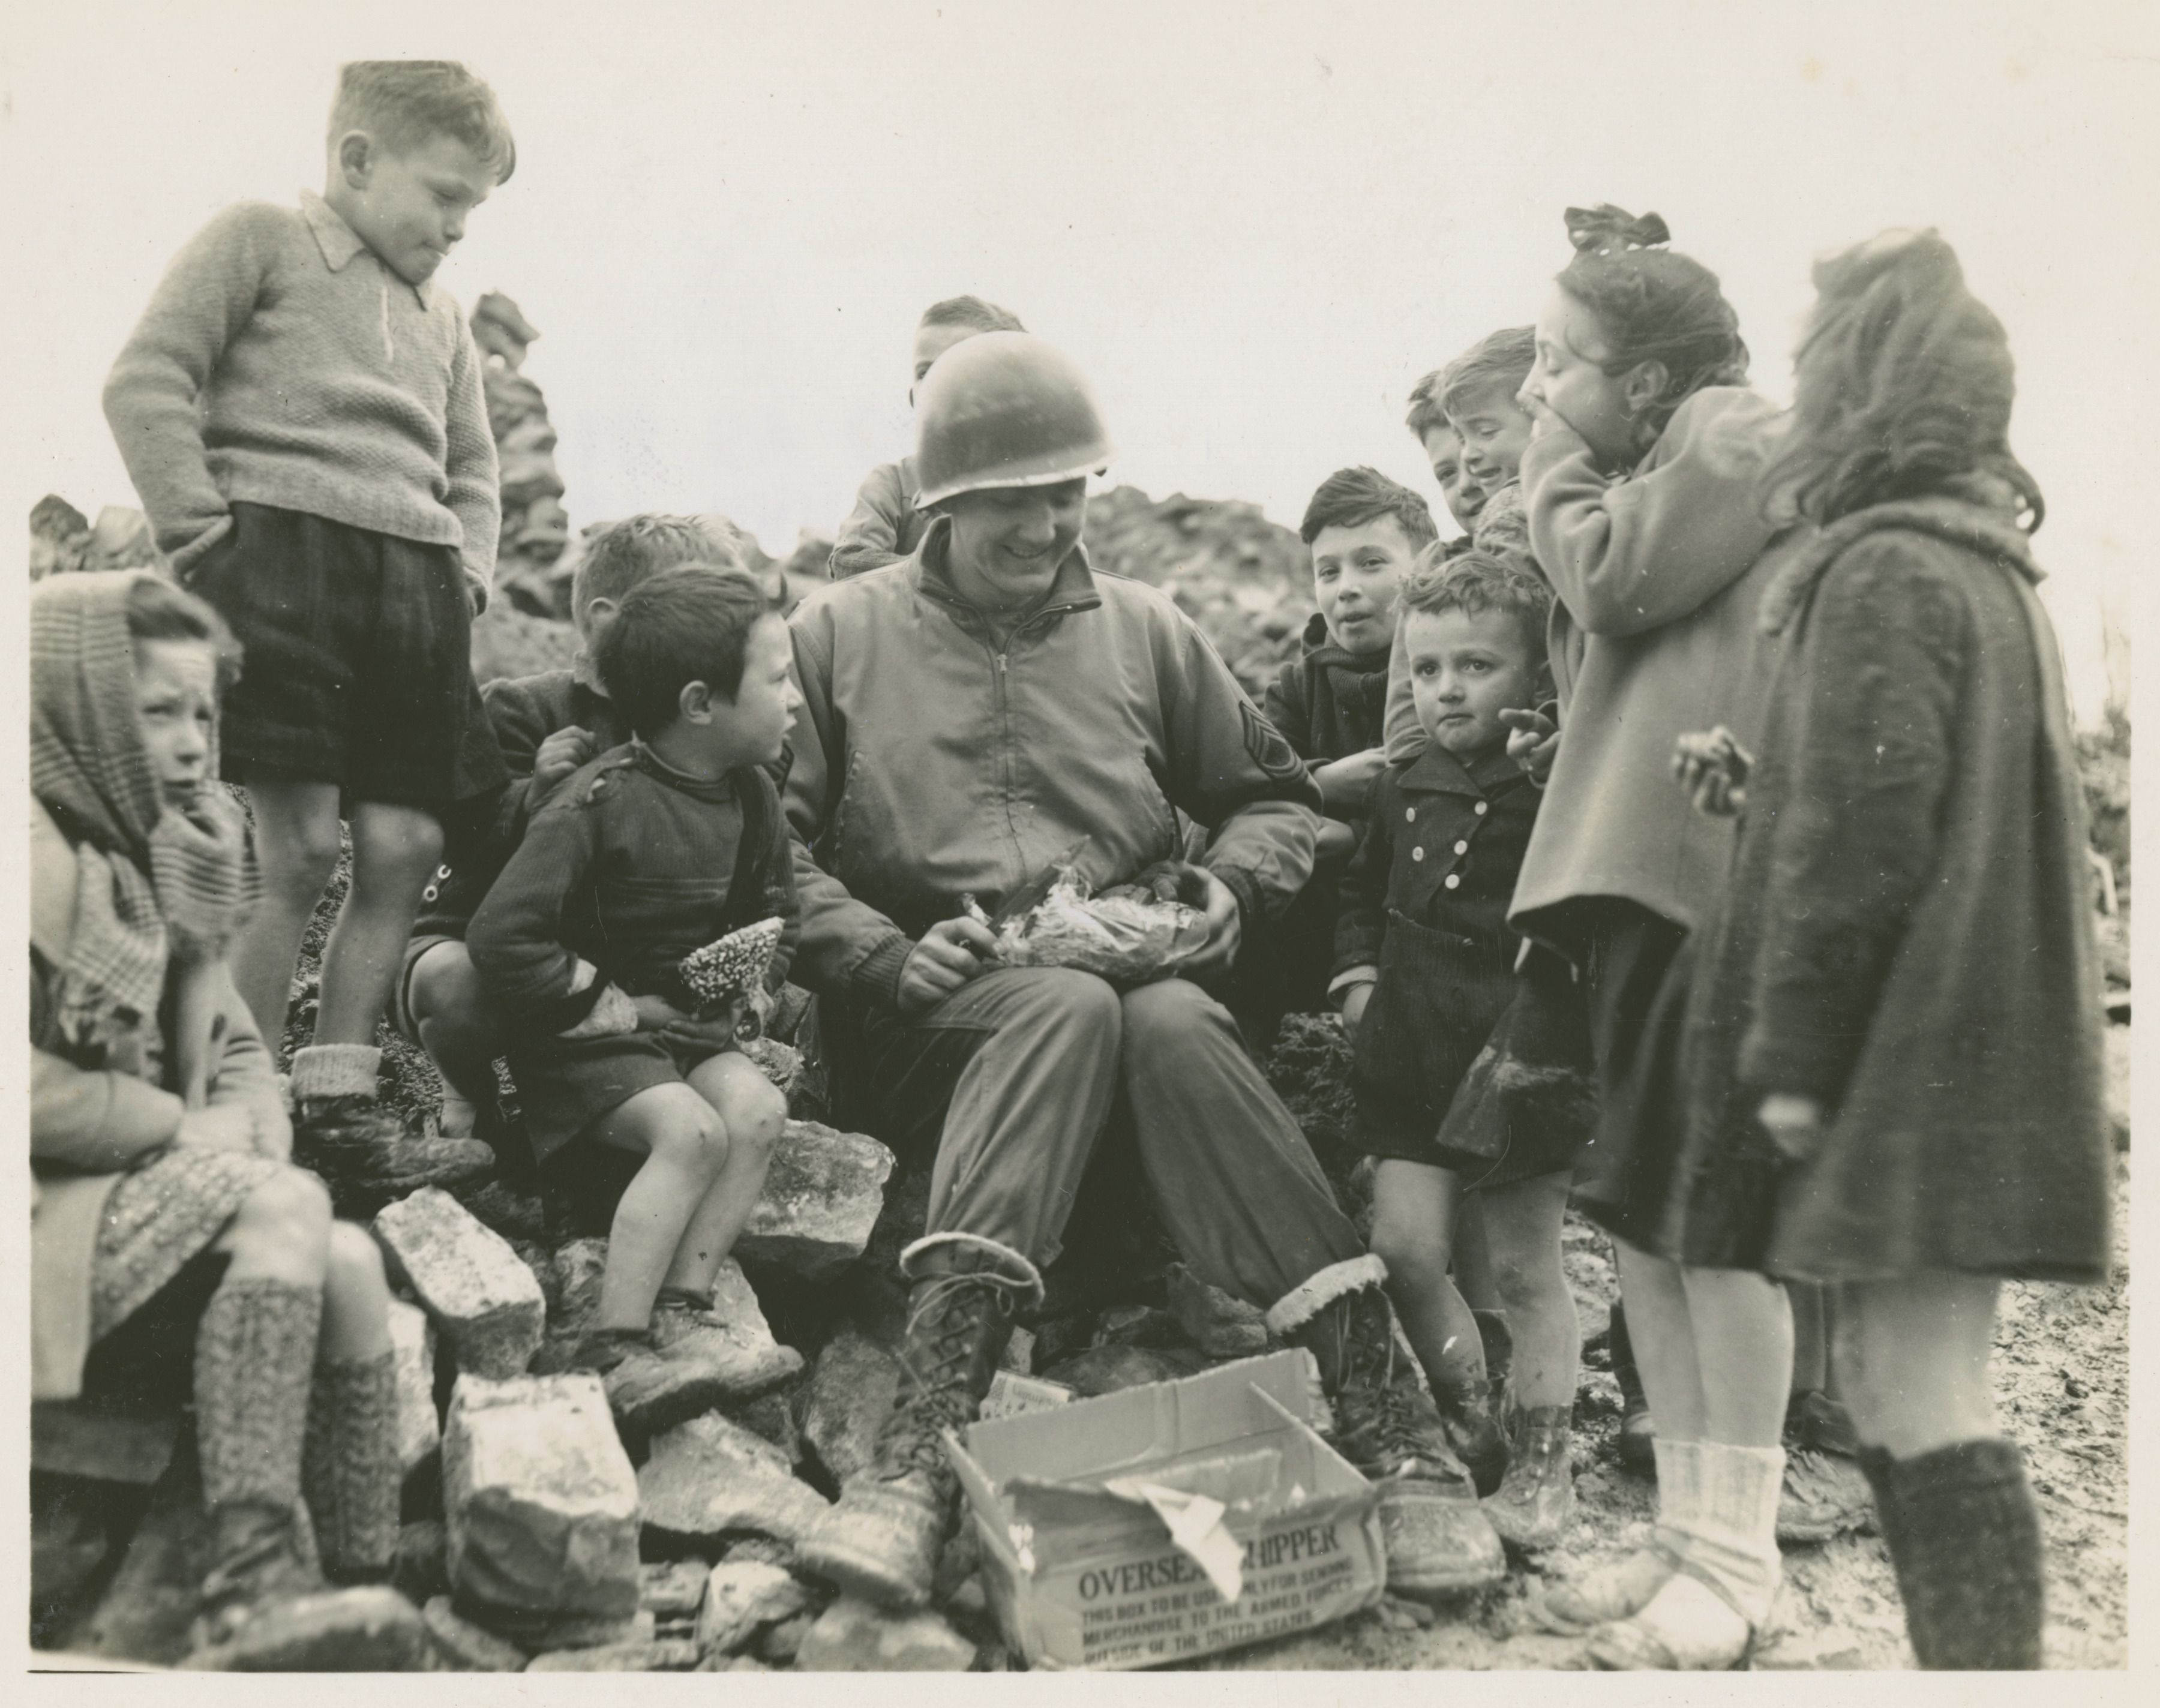 A U S Soldier Shares His Christmas Package With Italian Children At San Benedetto Italy On 11 December 1944 The Digital Collections Of The National Cmentarze